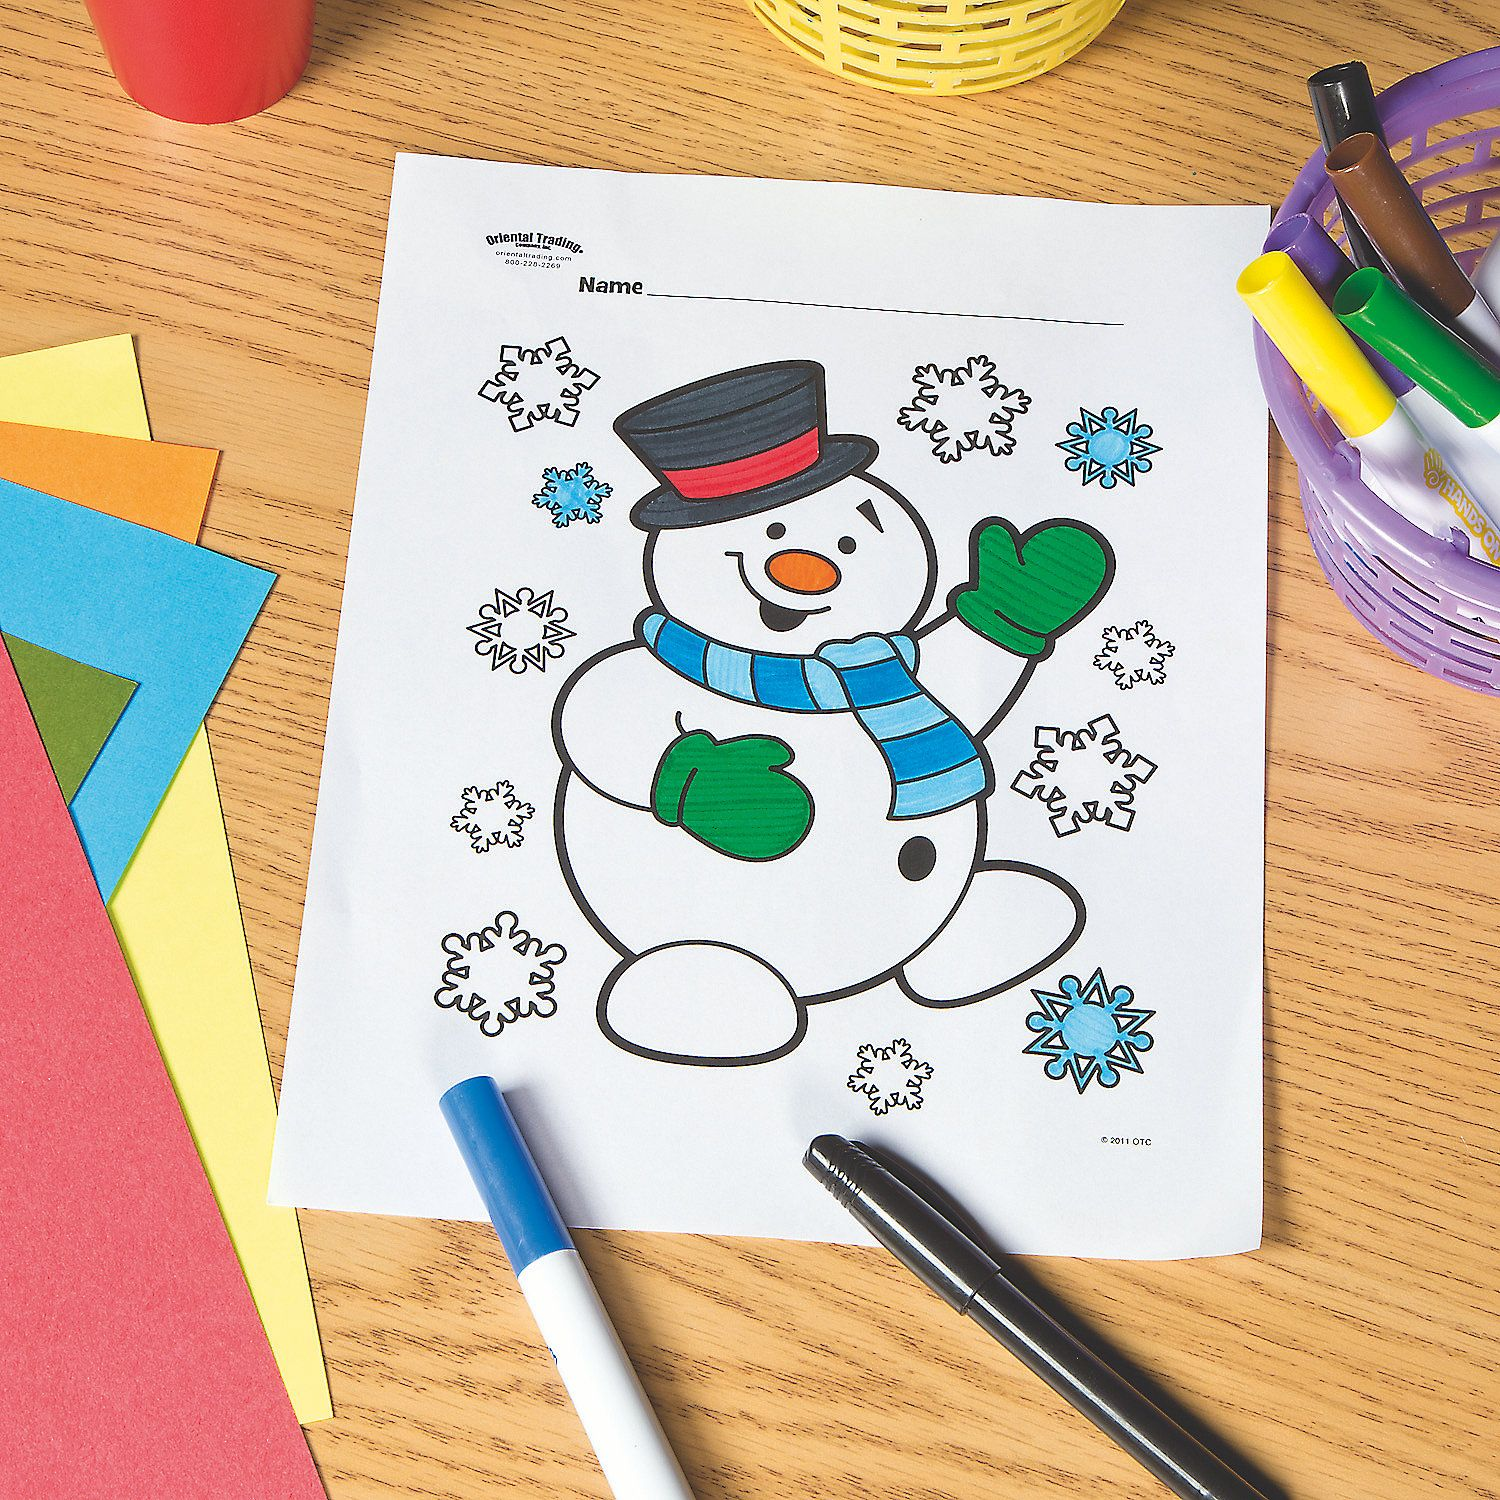 Snowman Free Printable Coloring Page Orientaltrading Com Snowman Party Printable Christmas Coloring Pages Free Christmas Coloring Pages